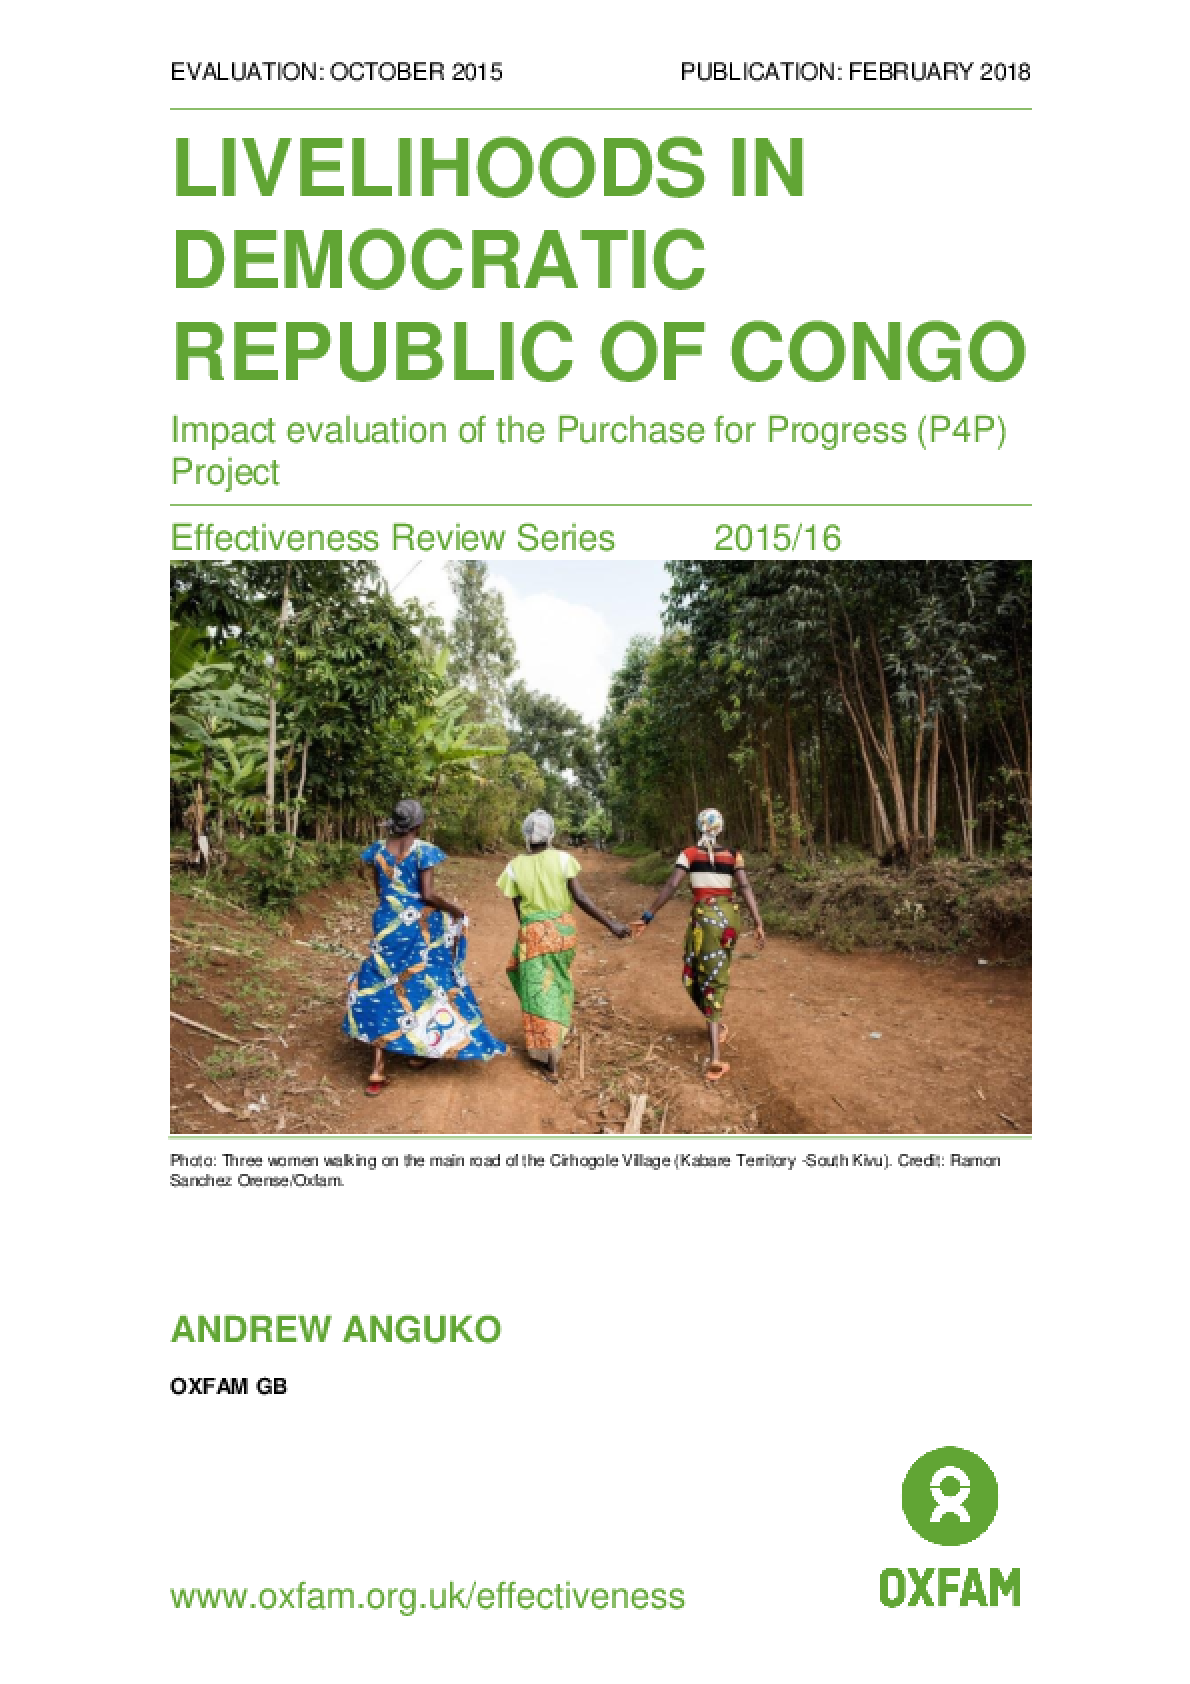 Livelihoods in Democratic Republic of Congo: Impact evaluation of the Purchase for Progress (P4P) Project